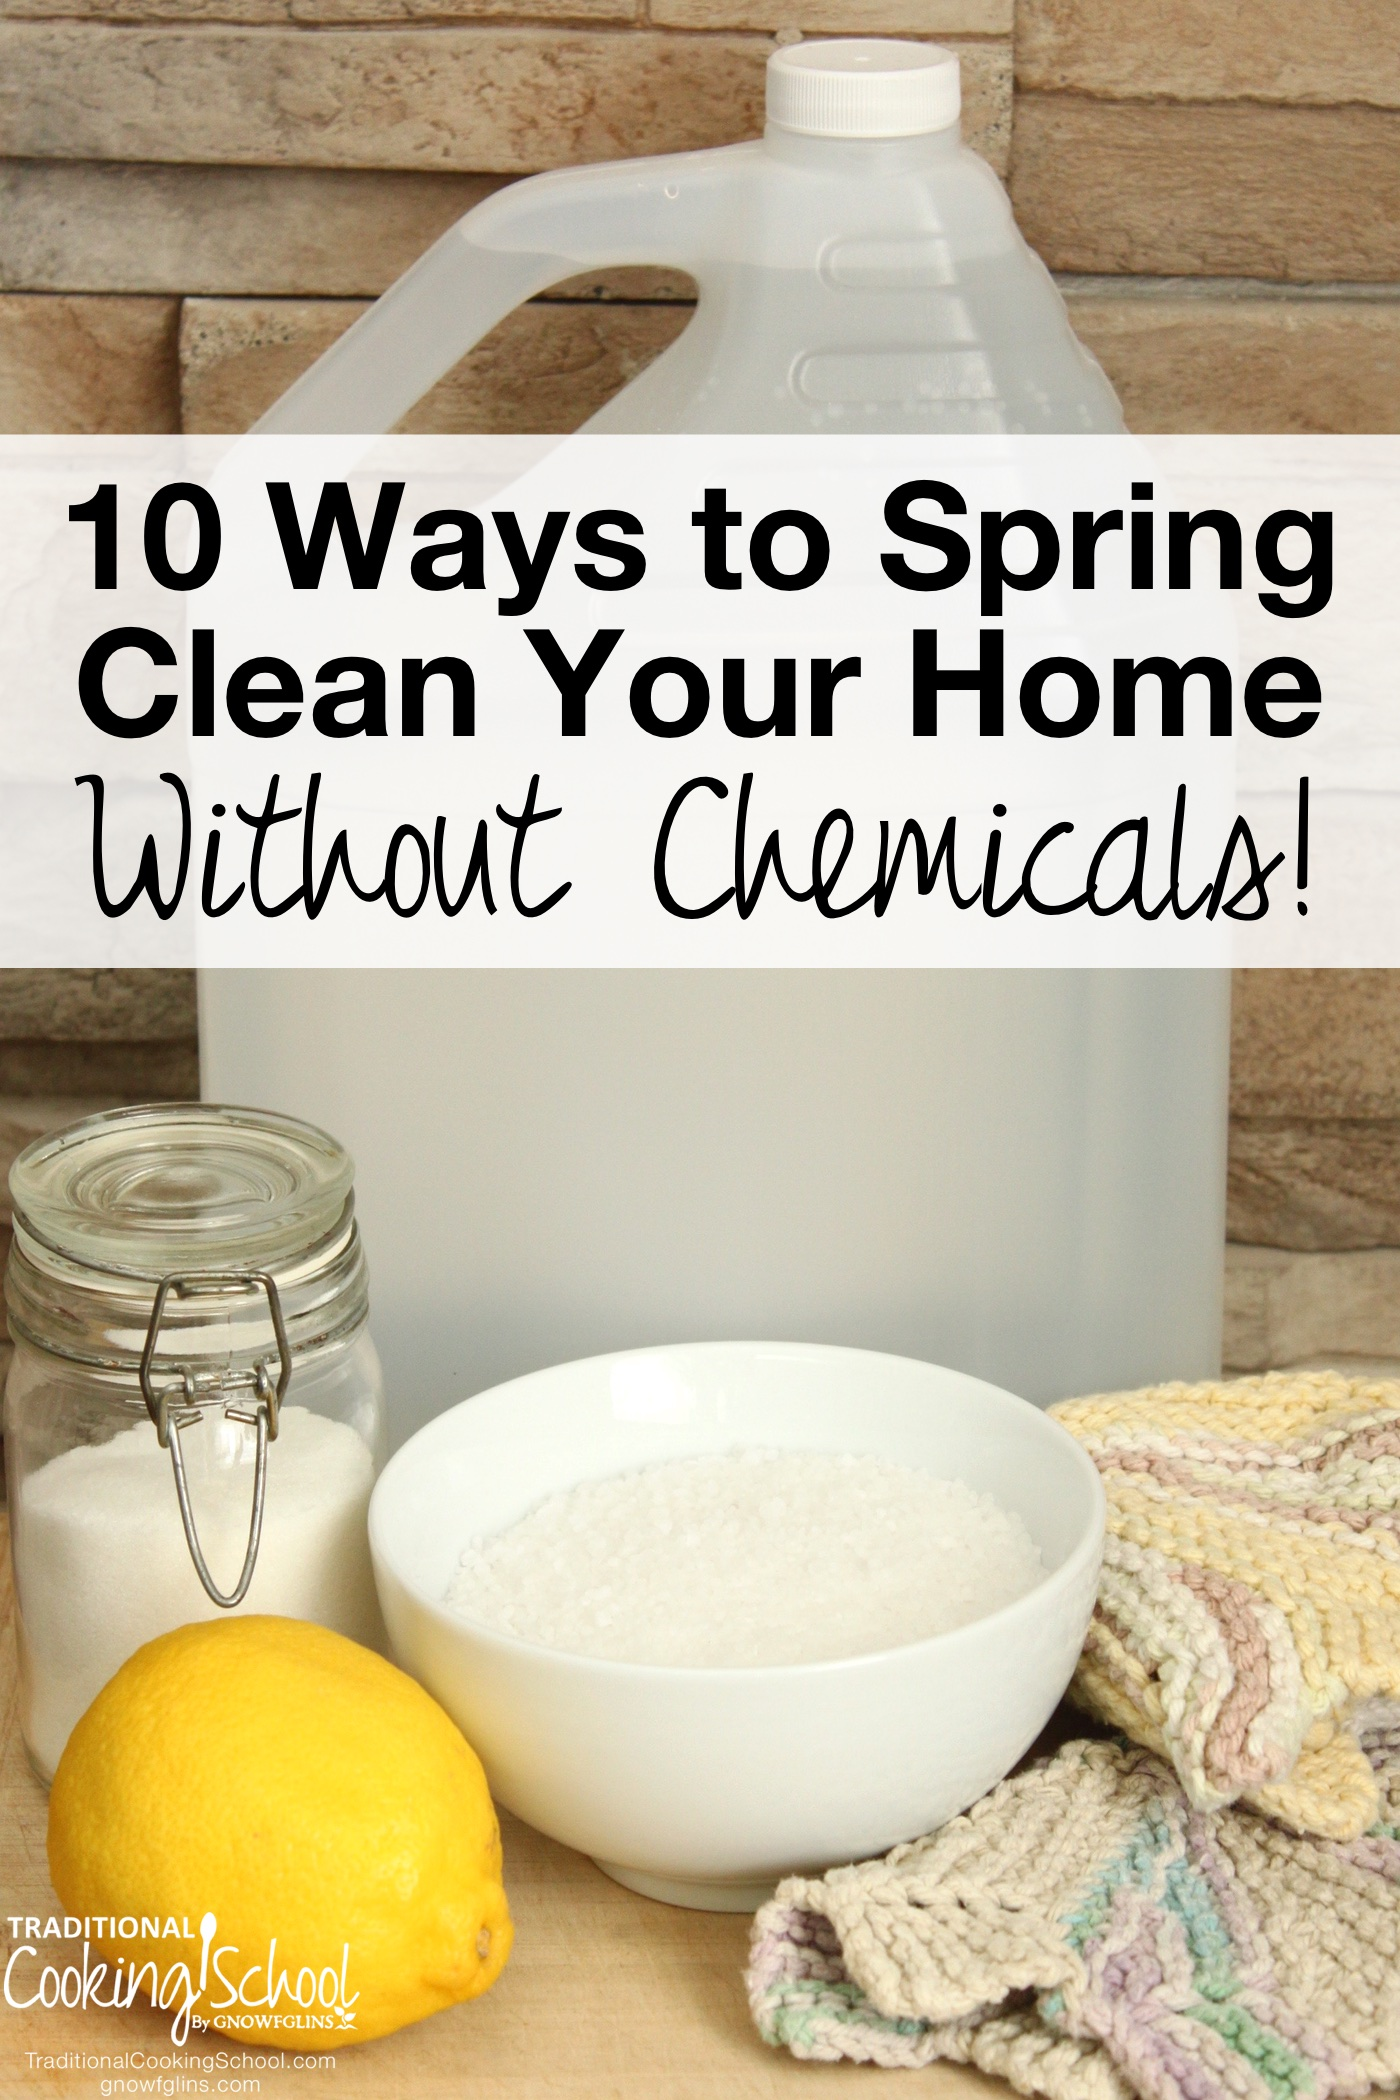 10 Ways To Spring Clean Your Home Without Chemicals | It's spring cleaning time! Did you know that some cleaners may be detrimental to your health? Luckily, you can clean without chemicals -- and your home will shine from top to bottom. Say hello to homemade cleaners! You probably have most of the ingredients already. Here are 10 of the most common areas of your home and how to keep them naturally clean. | TraditionalCookingSchool.com